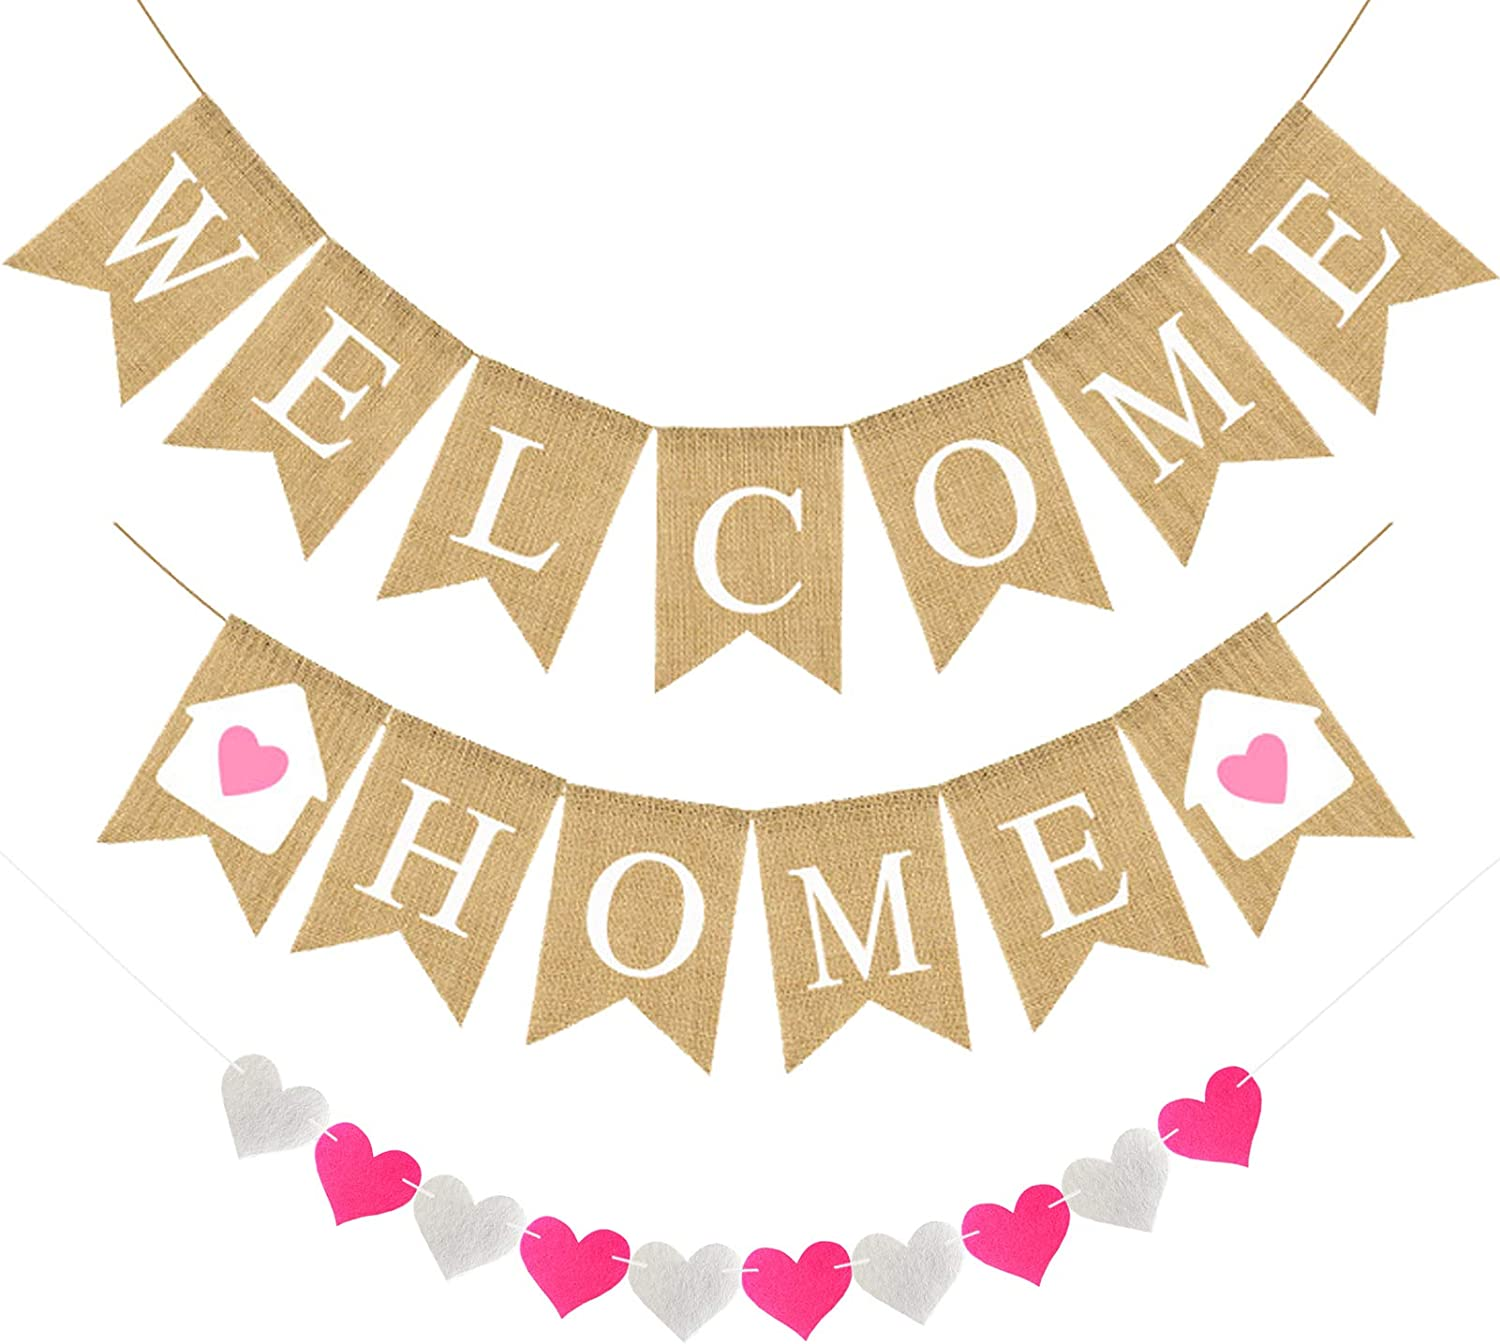 Welcome Home Banner Burlap Welcome Home Decorations, Rustic Bunting Garland Welcome Home Party Decorations, Welcome Home Sign